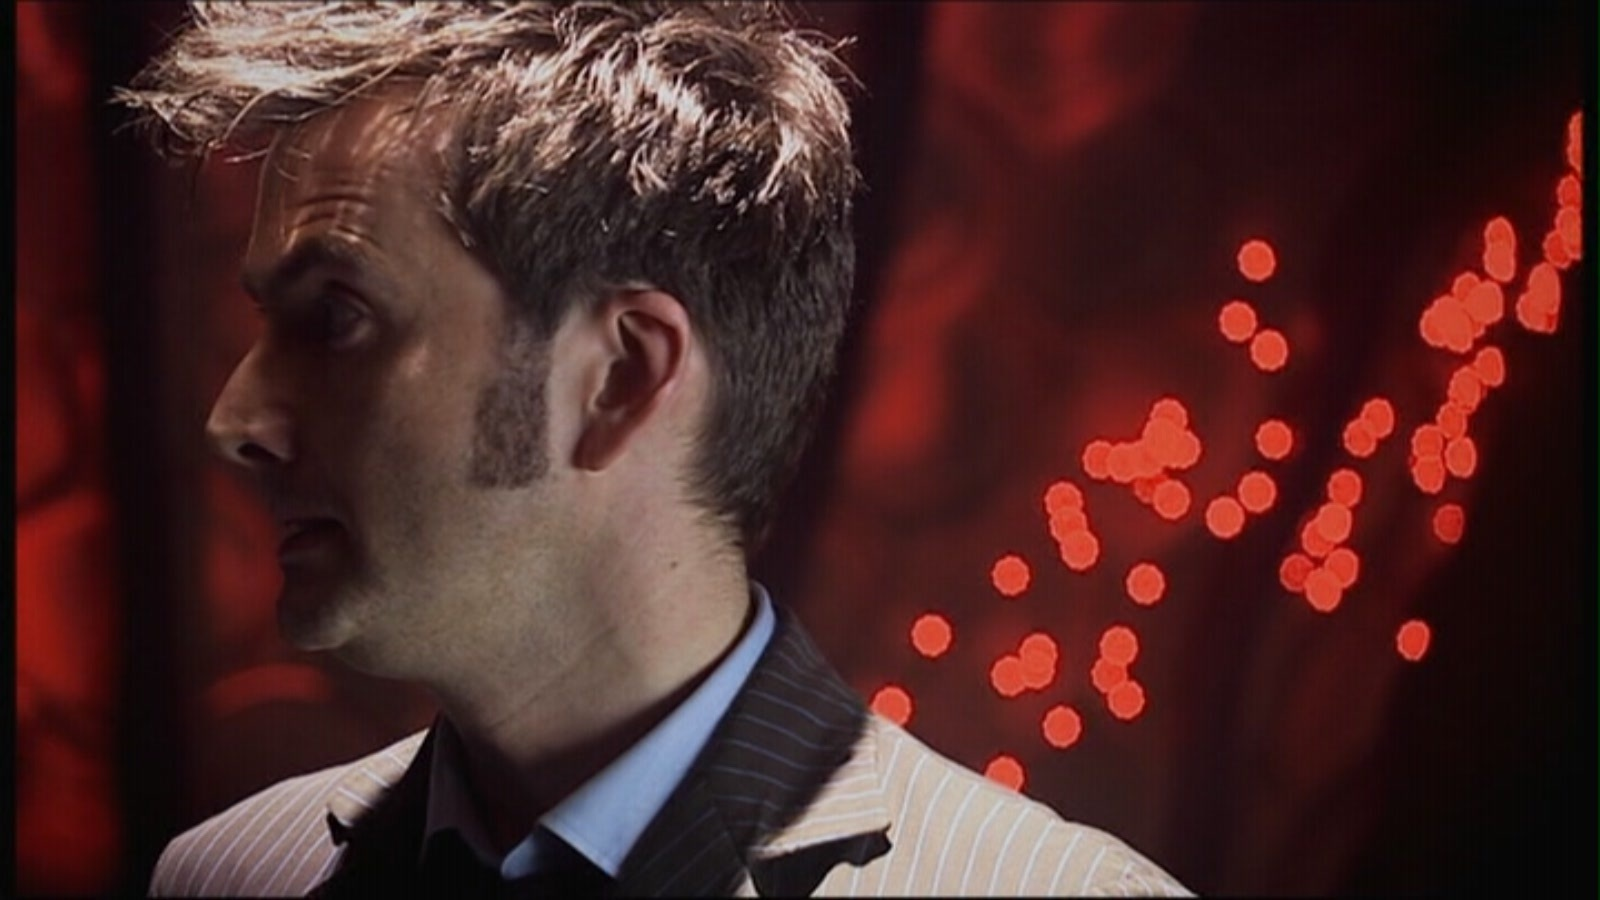 4x13 Journey's End - Doctor Who Image (21328578) - Fanpop